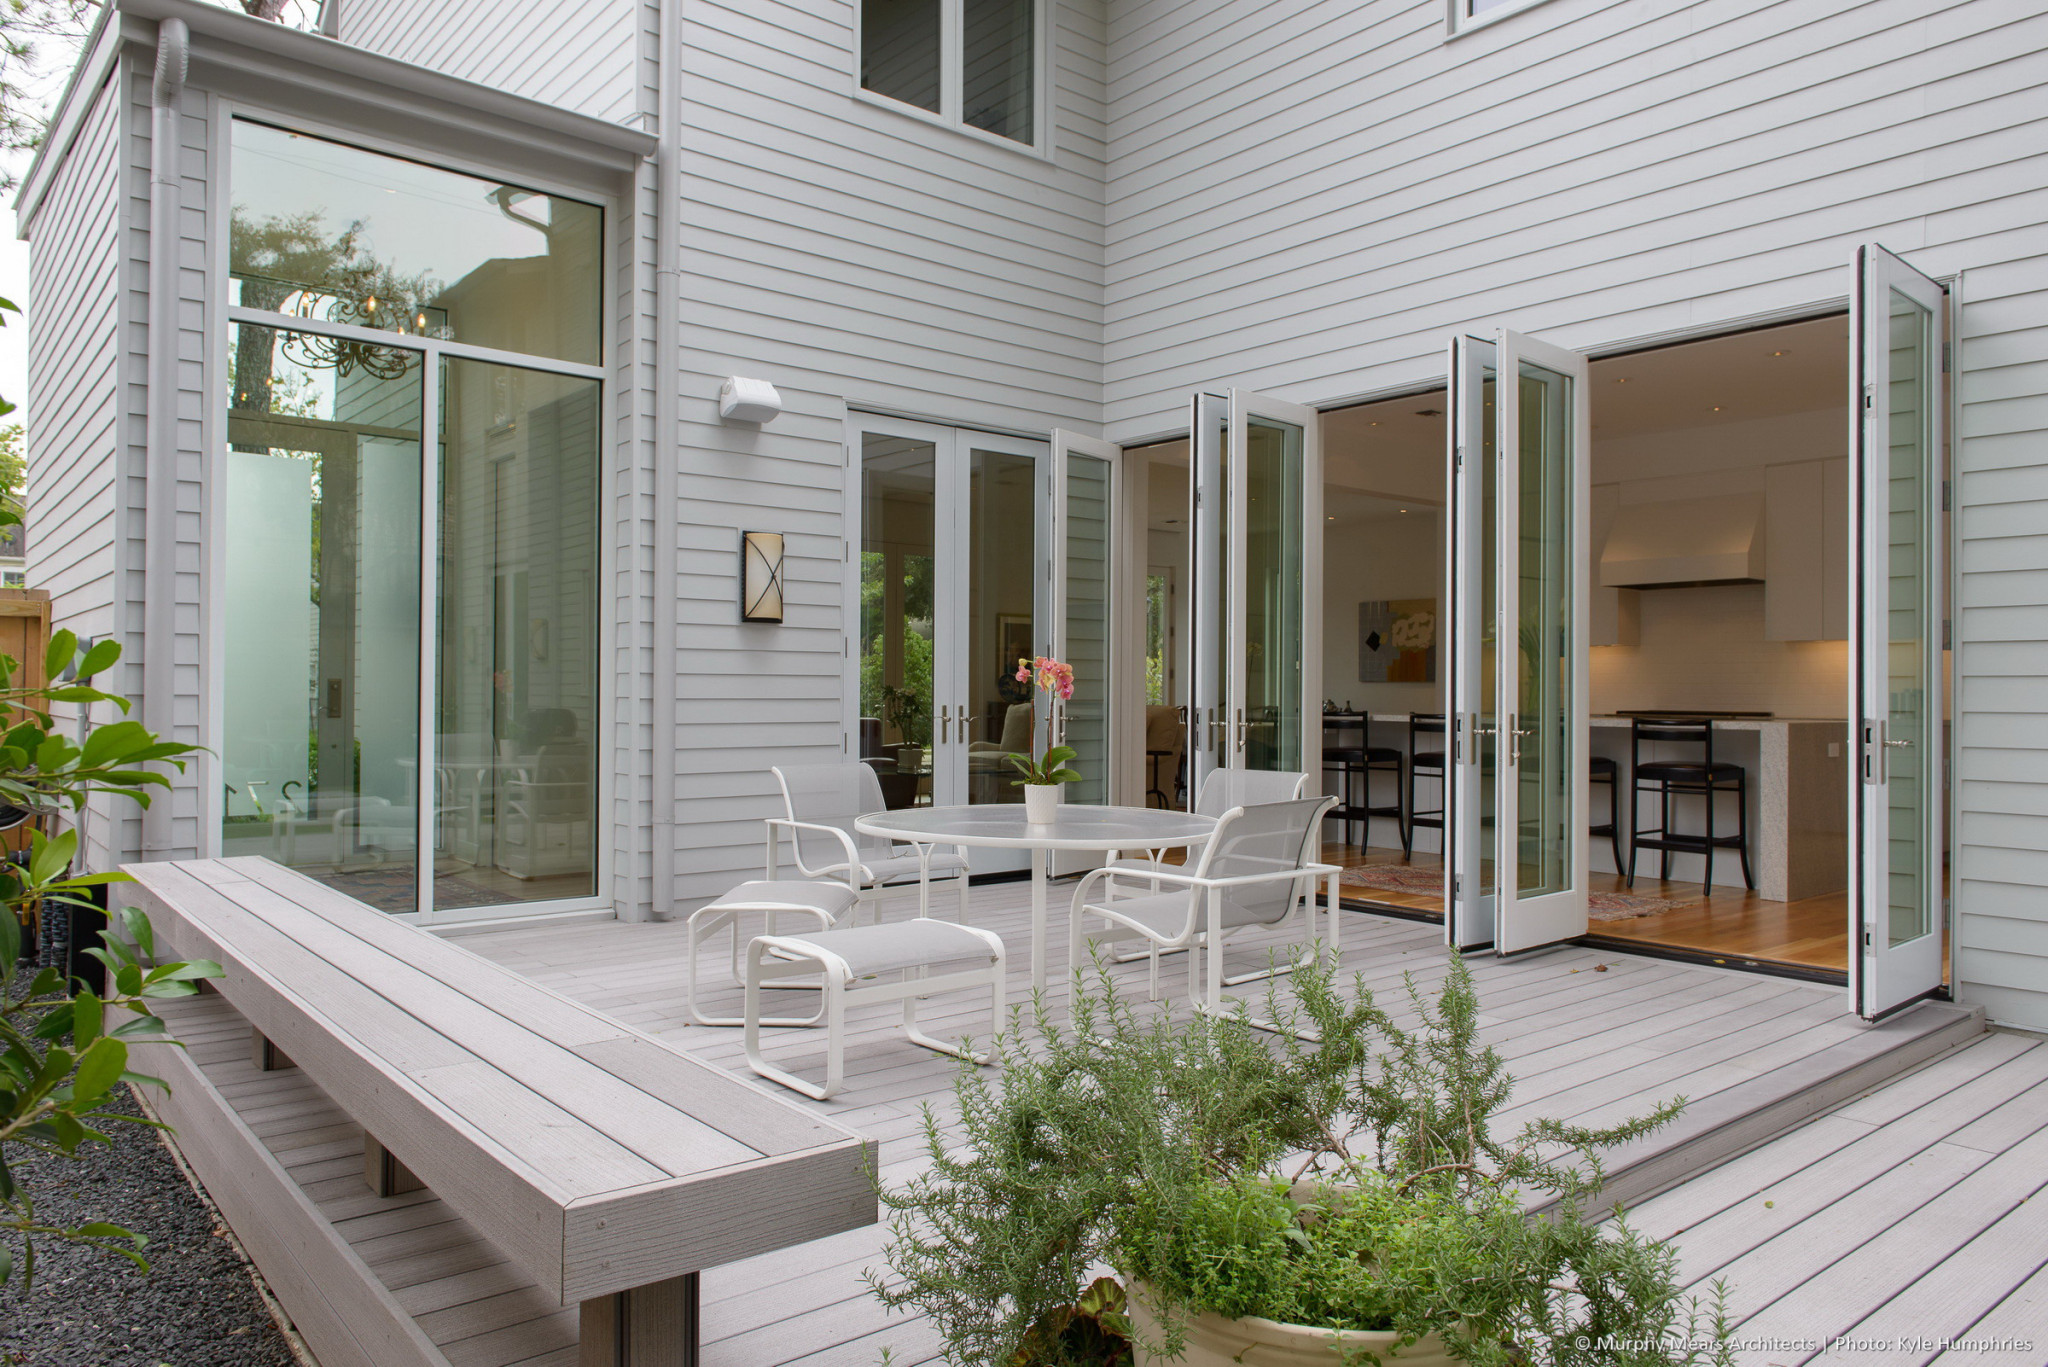 composite wood deck bordered by bench, storefront entry windows and french doors opening into kitchen